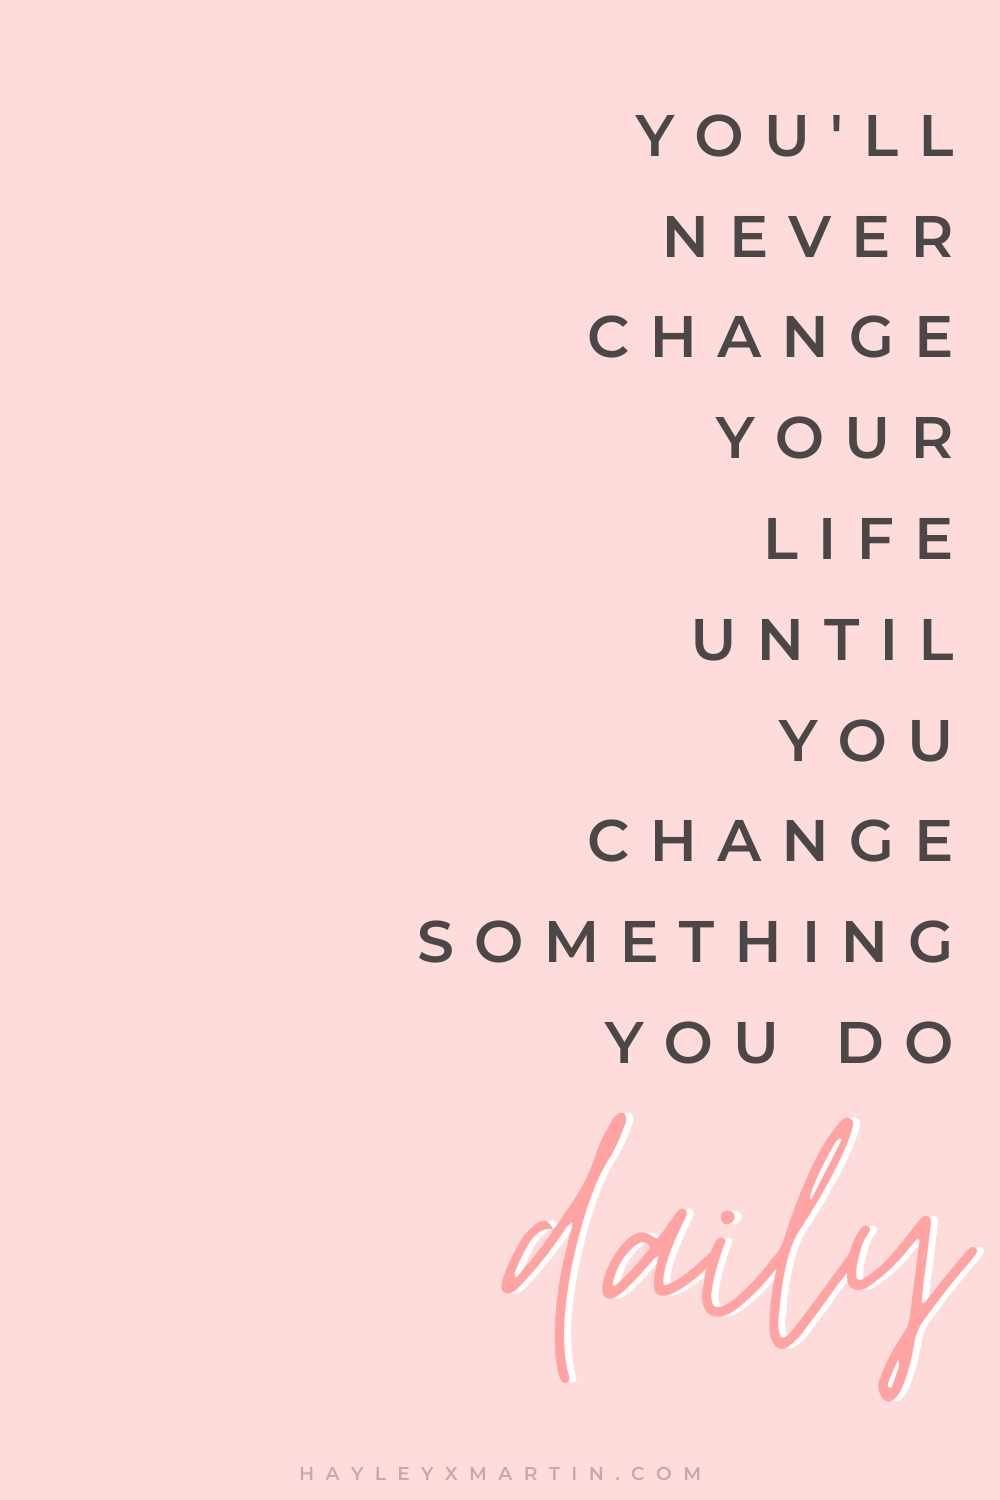 YOU'LL NEVER CHANGE YOUR LIFE UNTIL YOU CHANGE SOMETHING YOU DO DAILY | HAYLEYXMARTIN | INSPIRATIONAL QUOTE